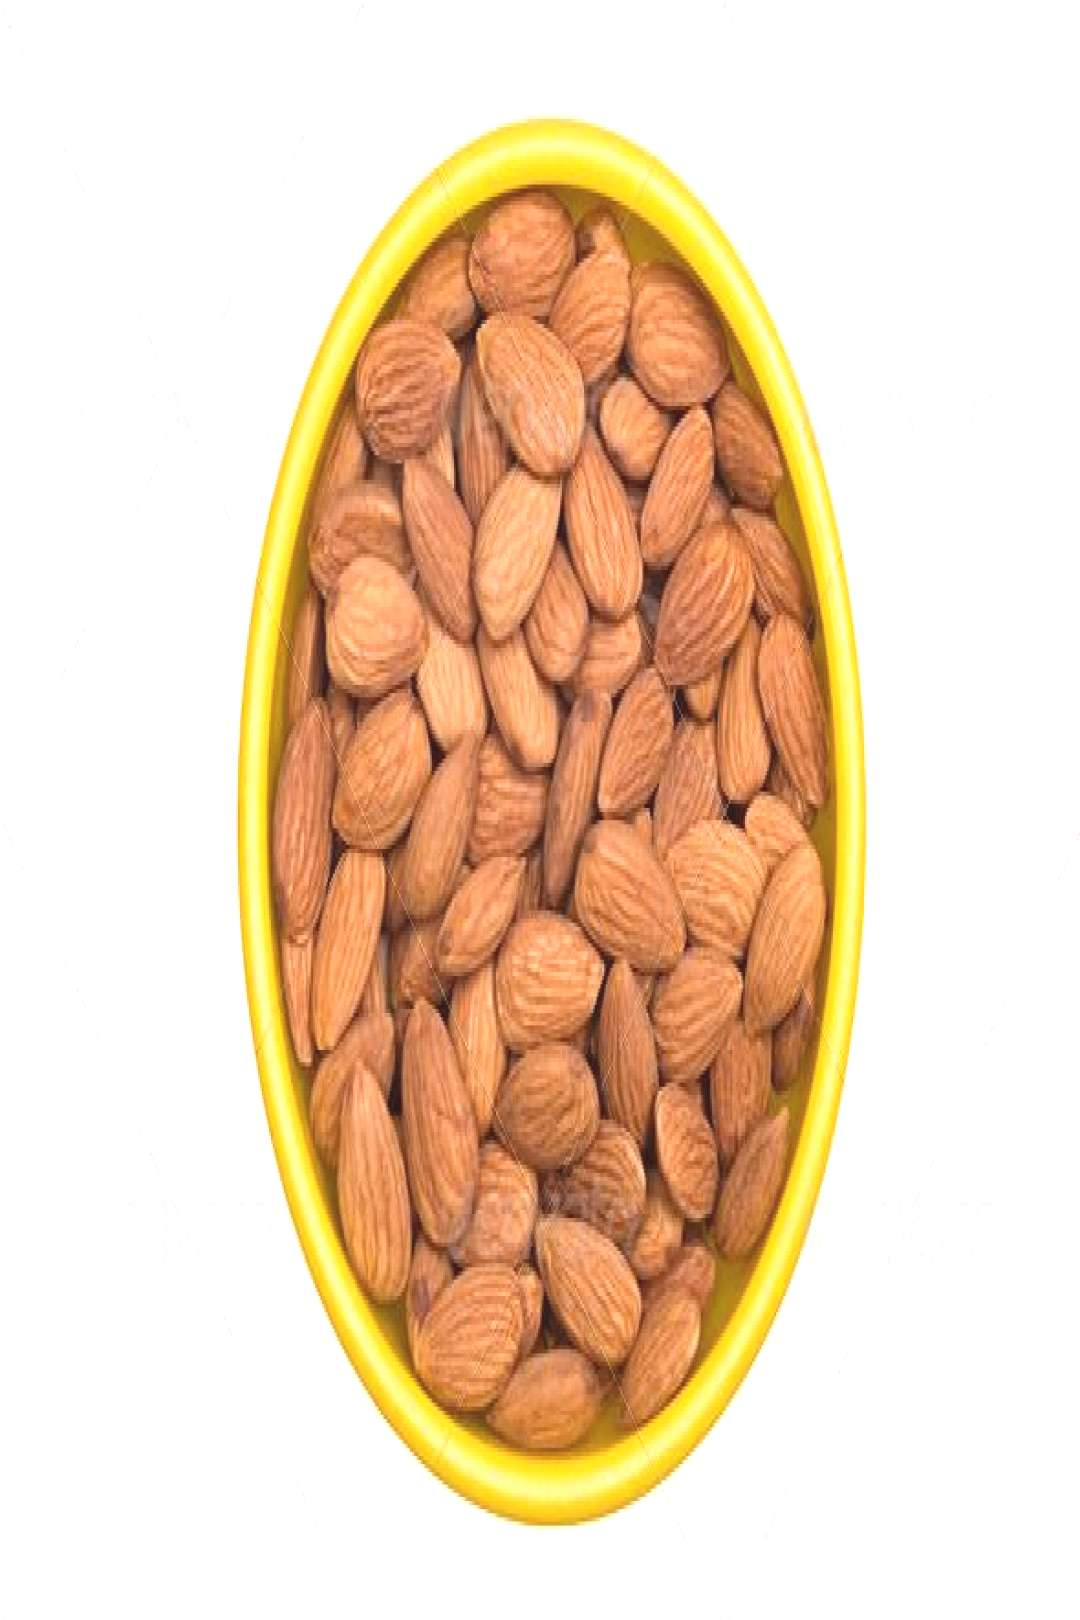 Bowl of Almonds by joebelanger. A bowl of whole raw almonds isolated on a white background.